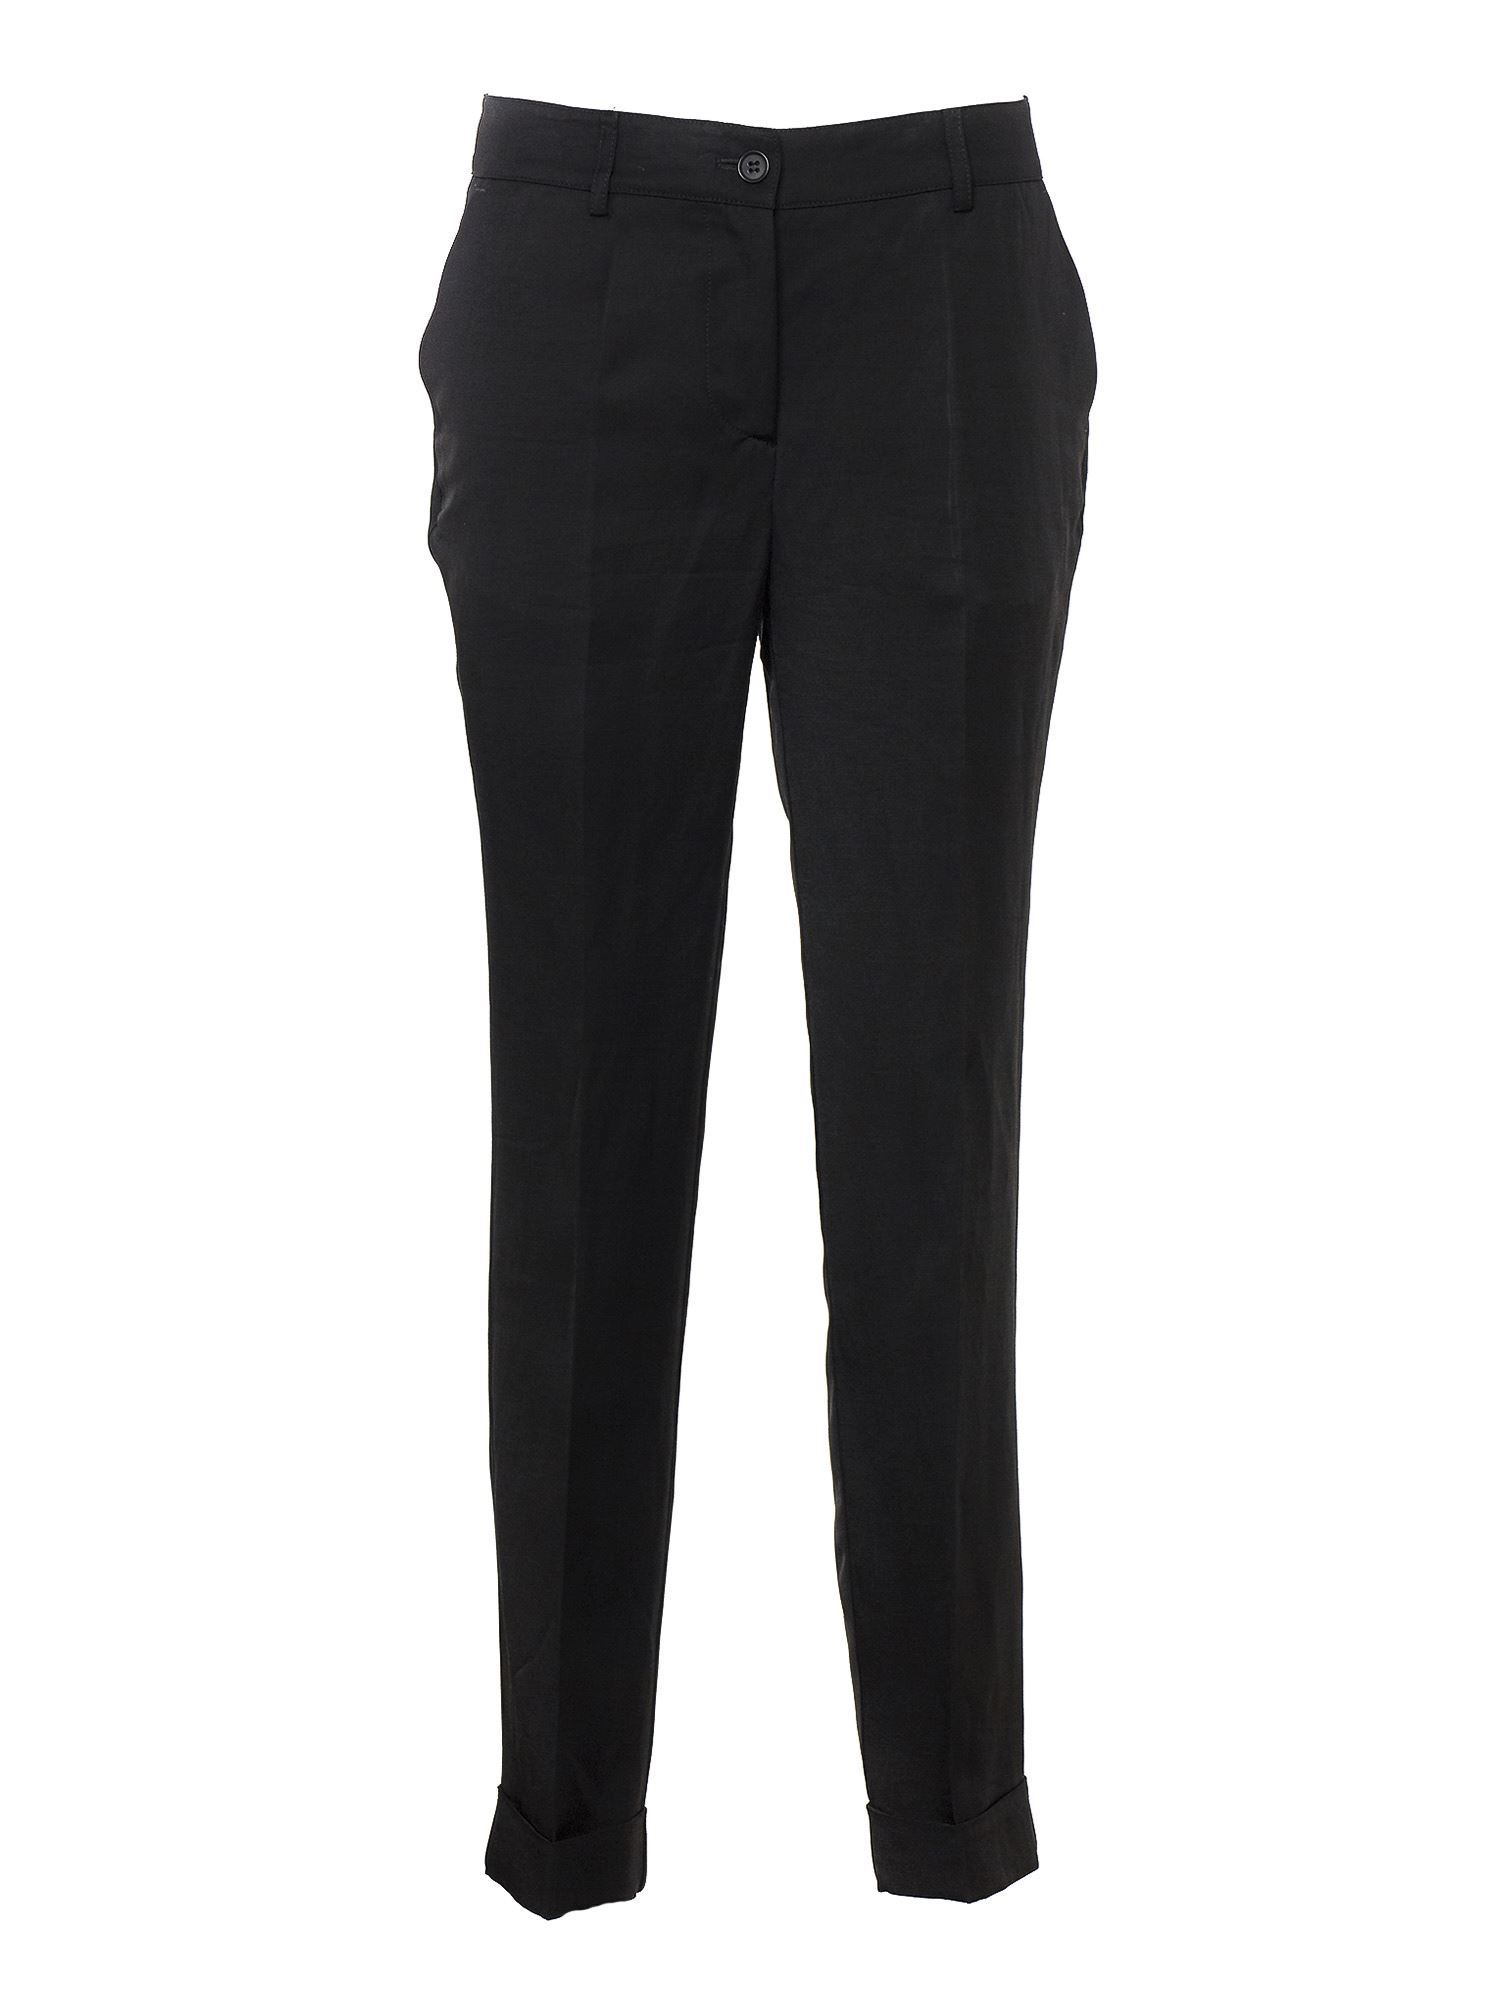 P.a.r.o.s.h. SLIM TROUSERS IN BLACK